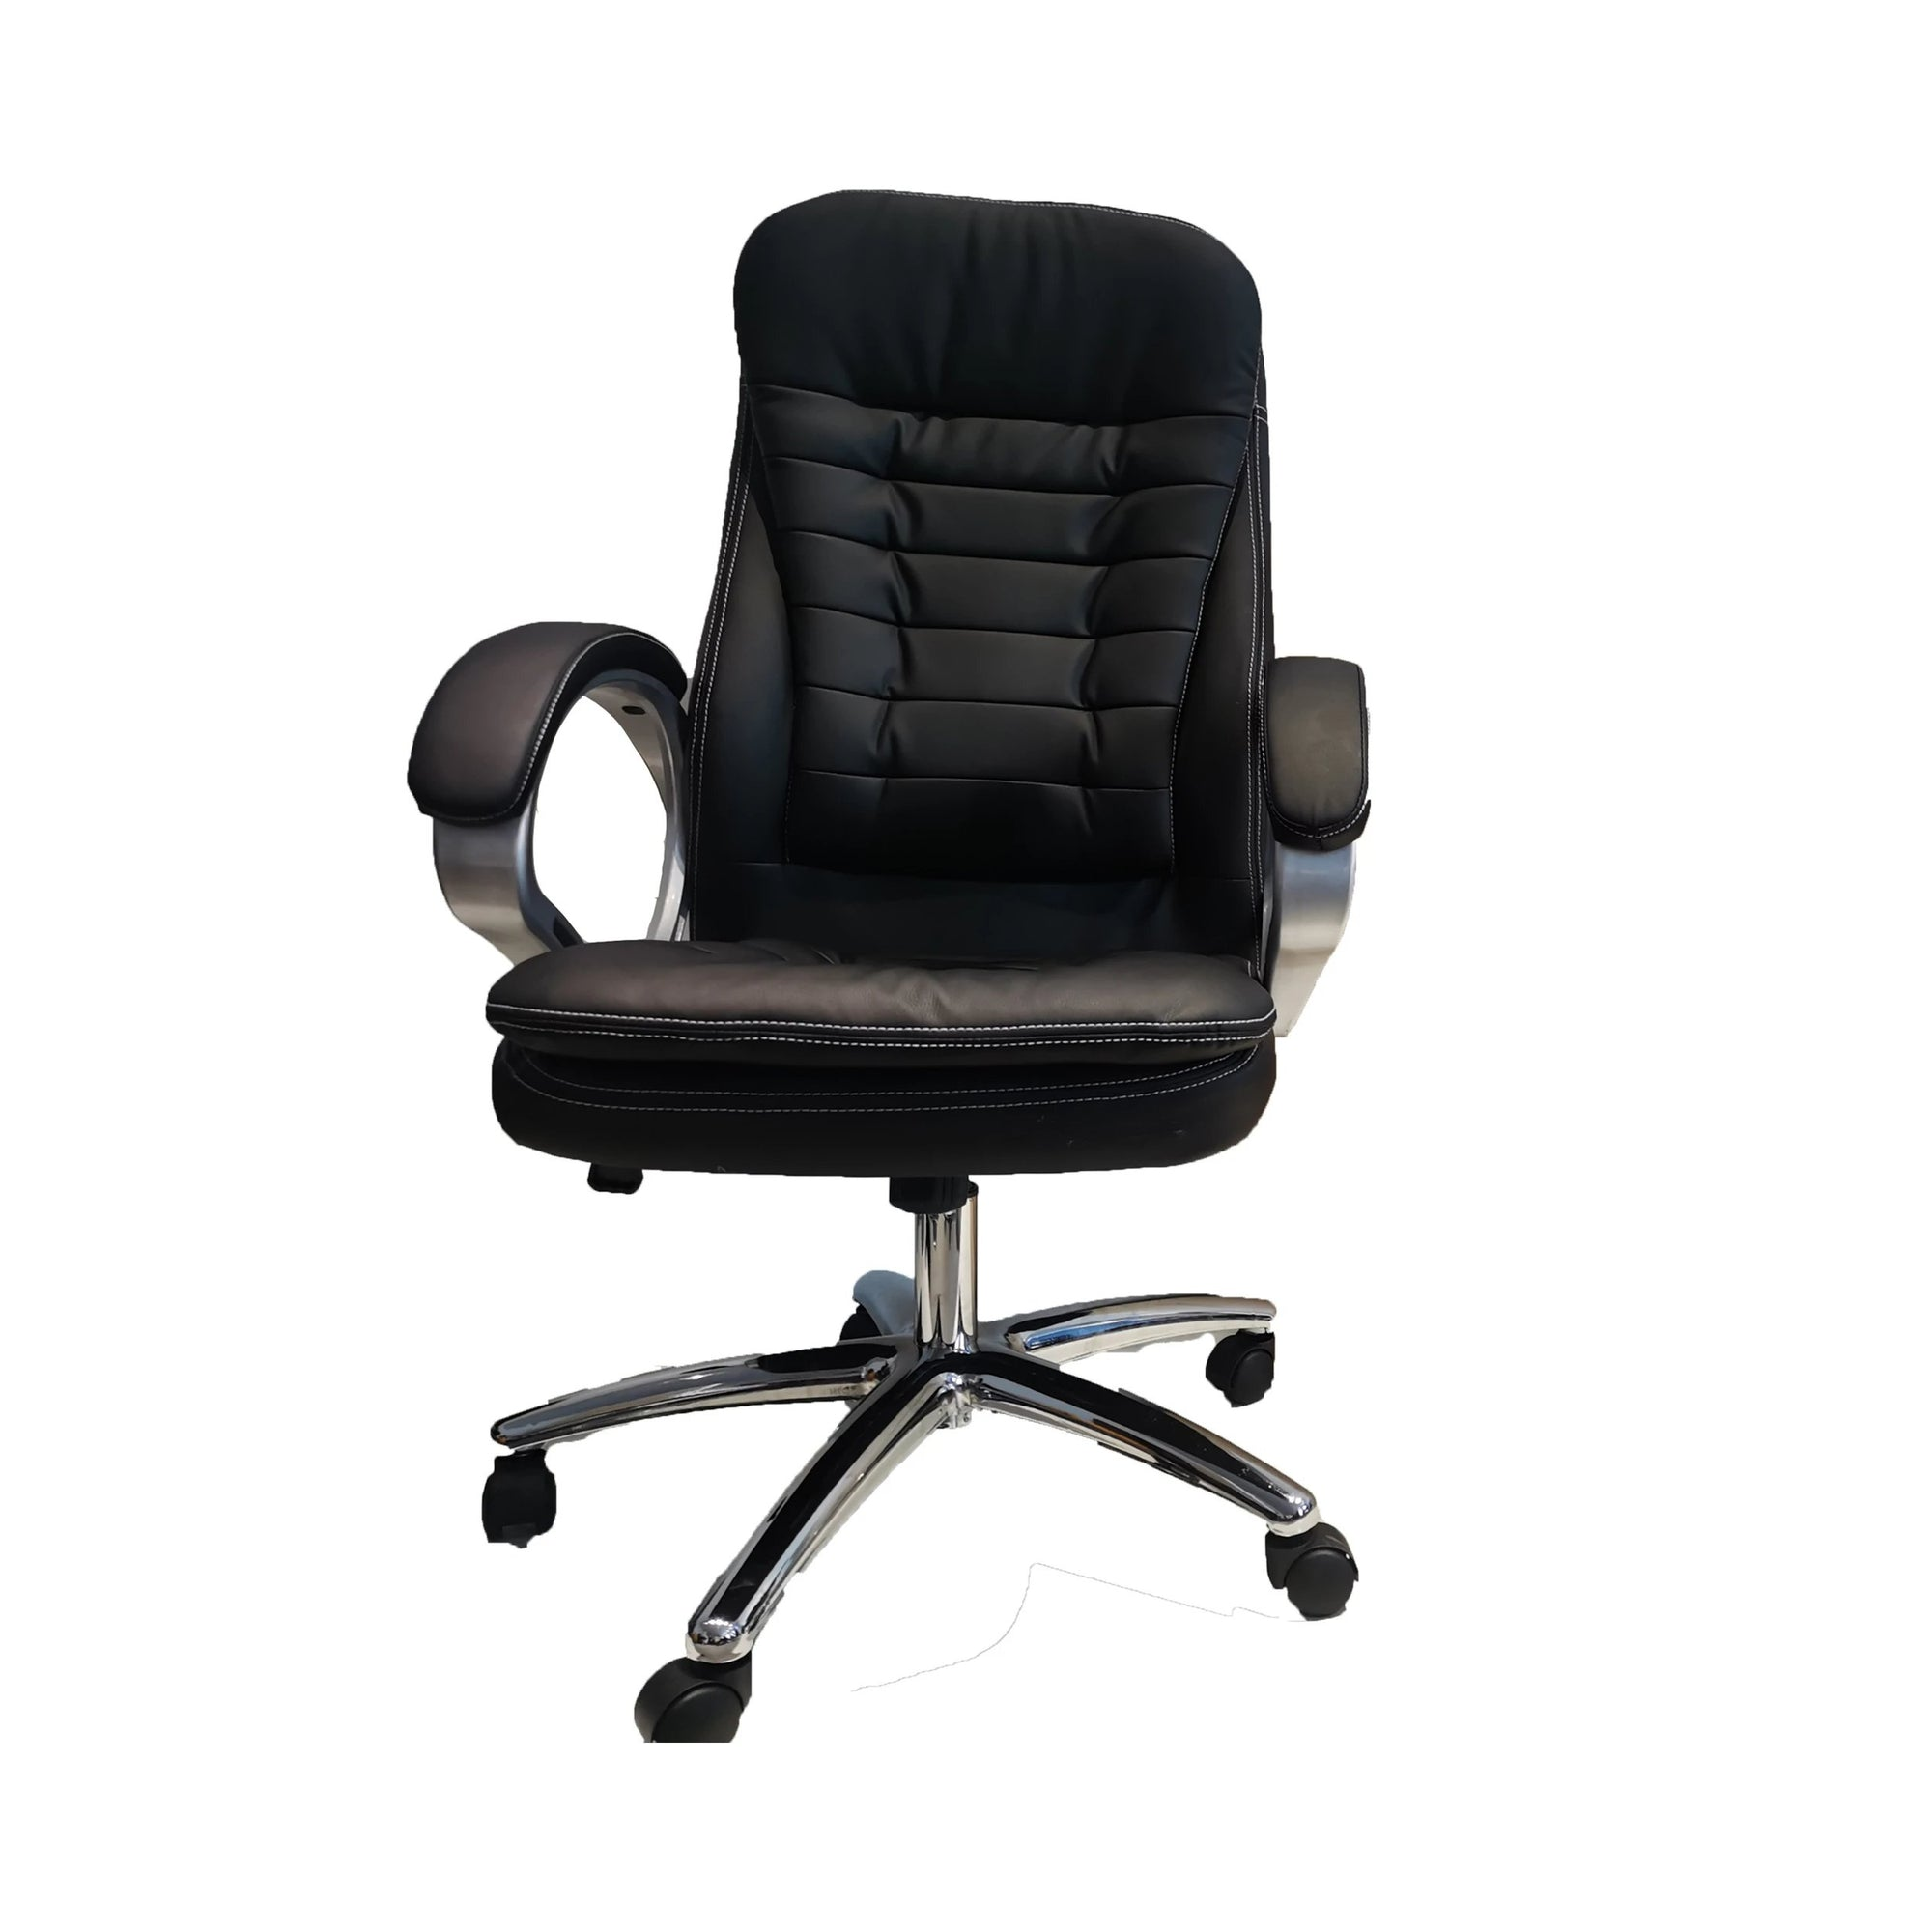 Ergonomic Executive Office Chair Medium Back Office